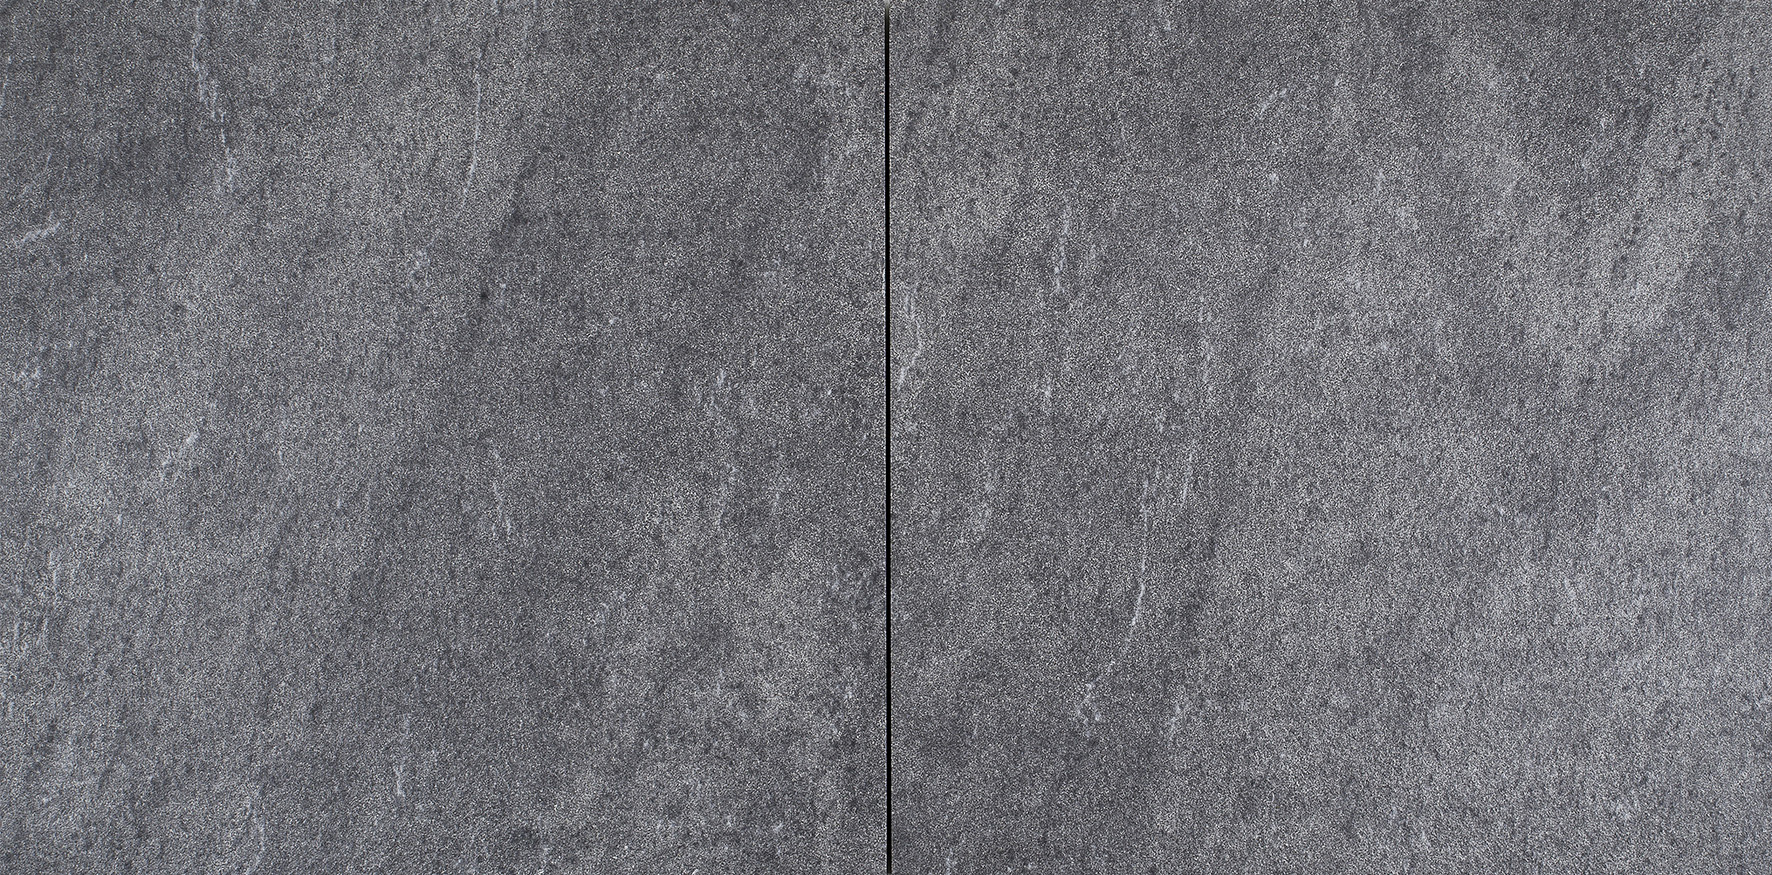 Gardenlux | Cera4line light 60x60x4 | Stone Grey